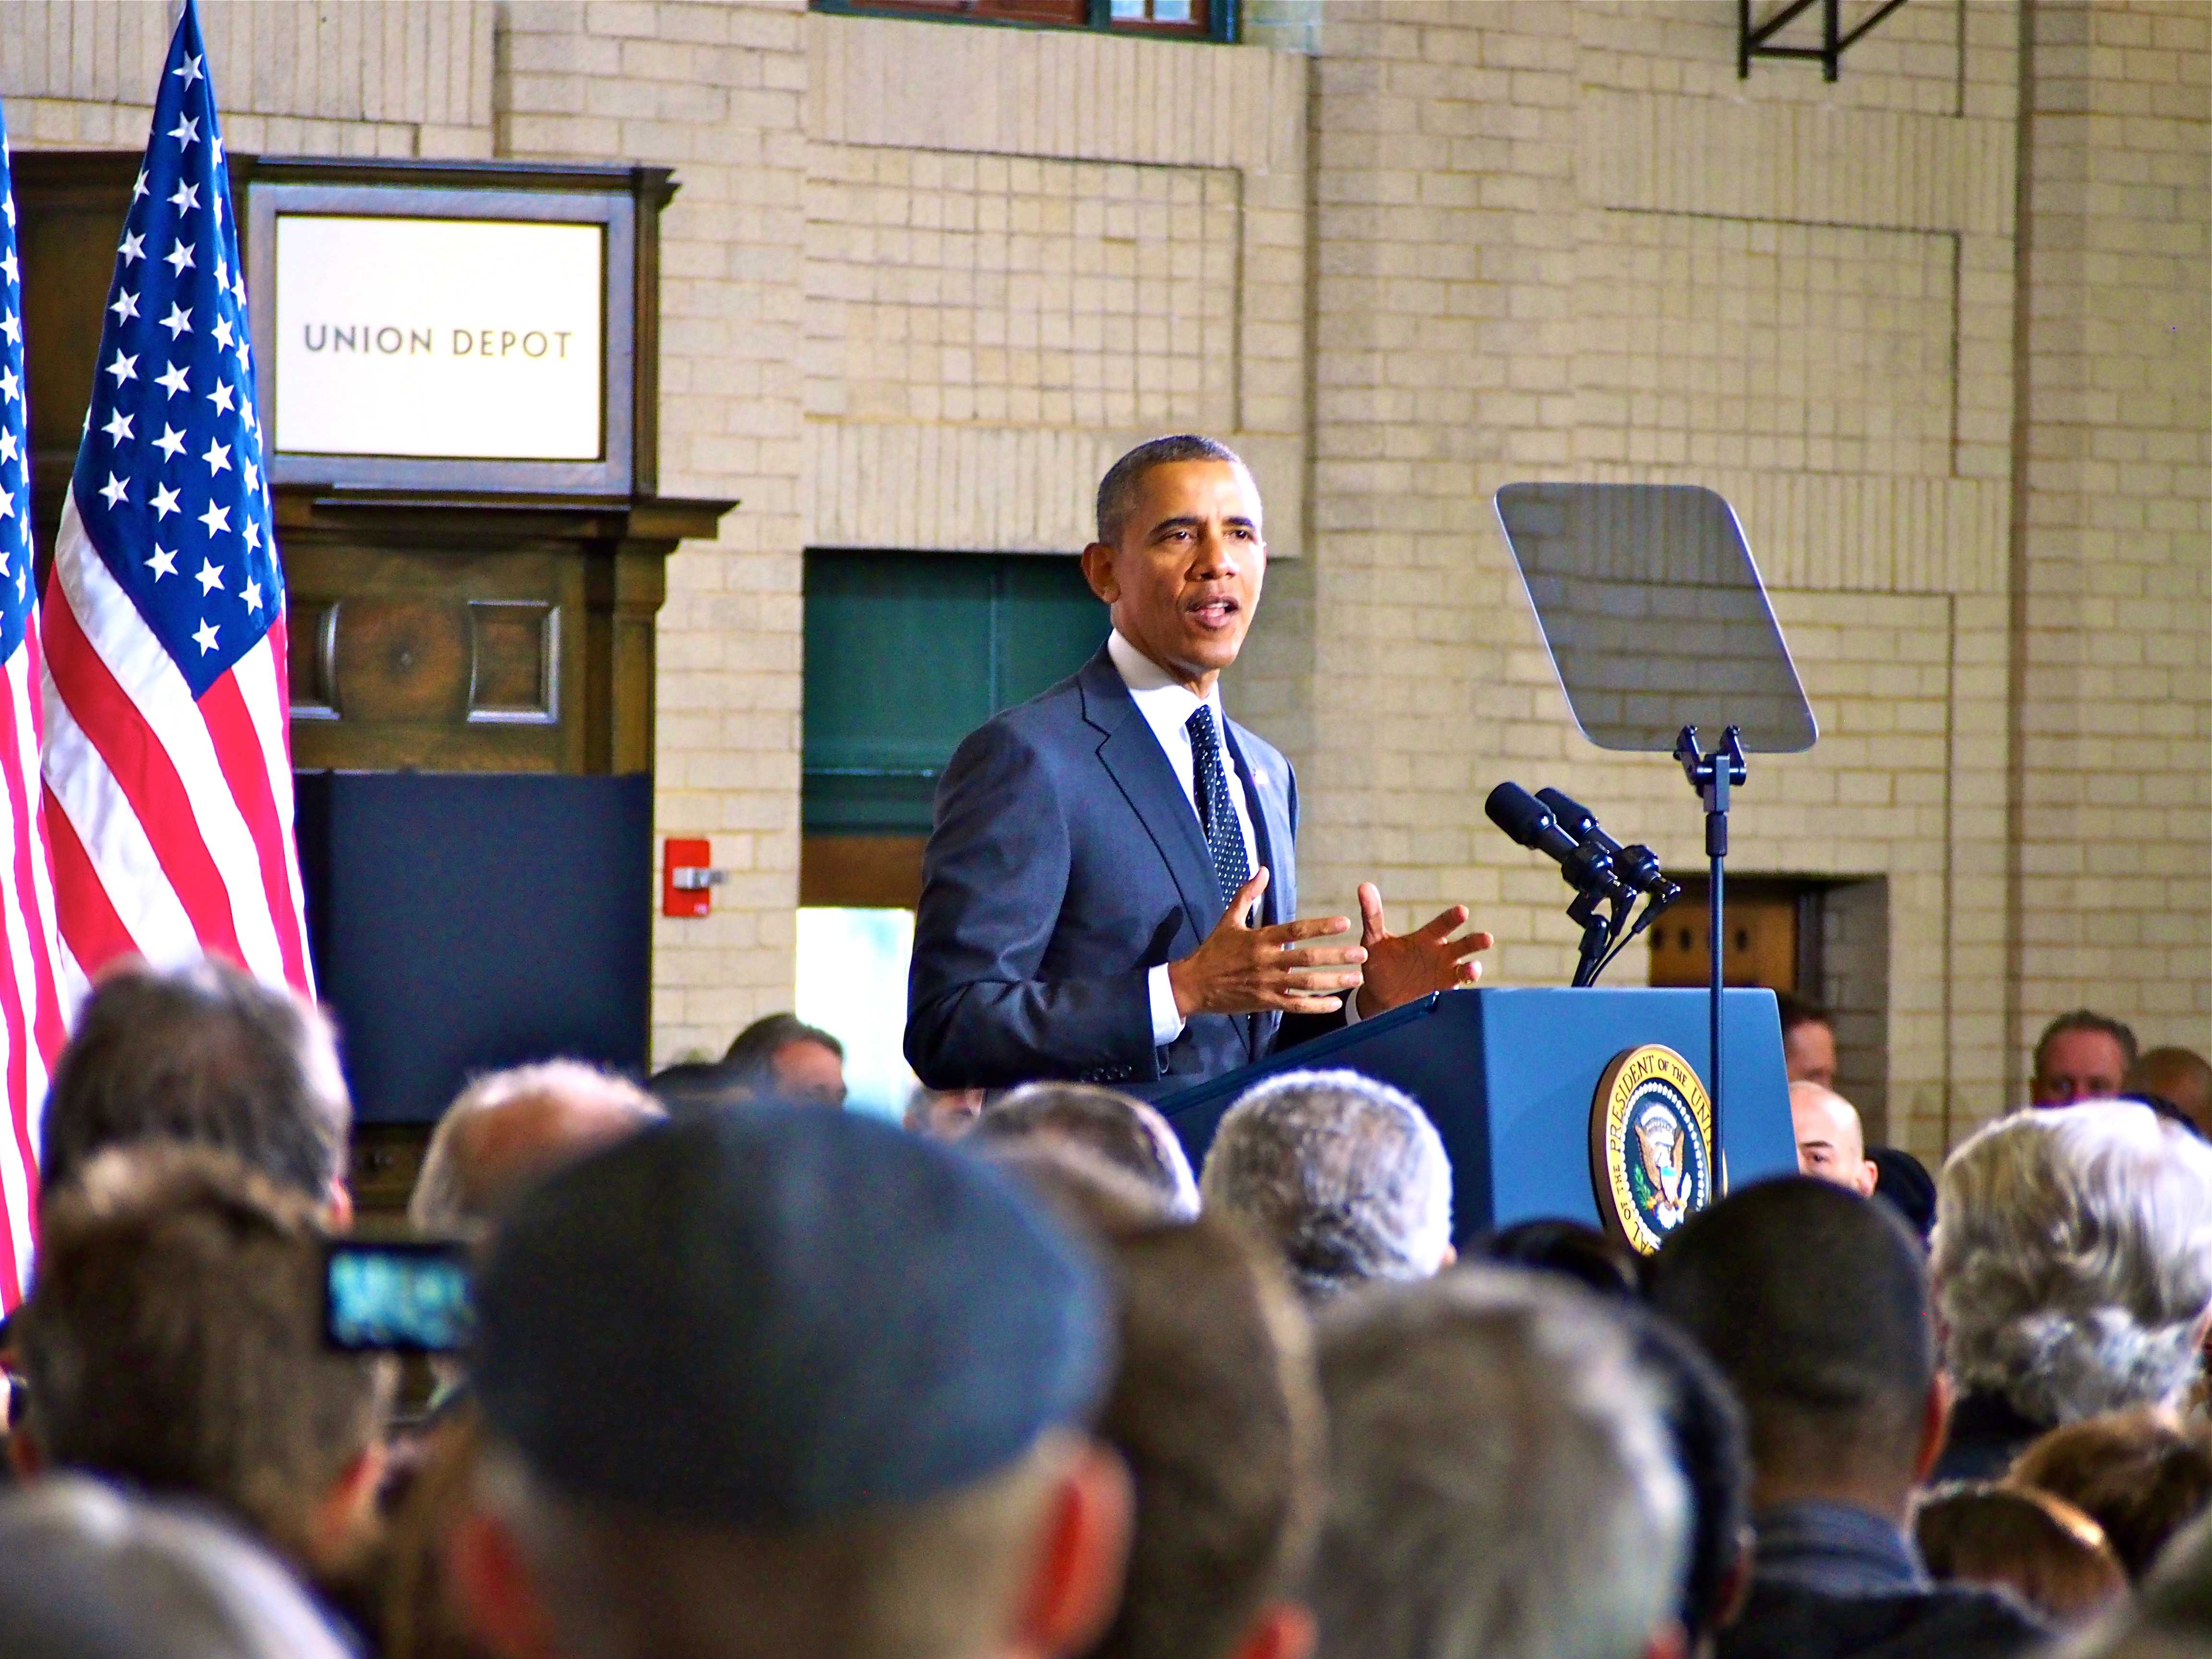 President Barack Obama speaking to a crowded Union Depot on Wednesday, Feb. 26. Roughly 1,300 were in attendance and heard the president's announcement of competitive federal grants for infrastructure development in cities around the United States. Photo by Jesse Meisenhelter